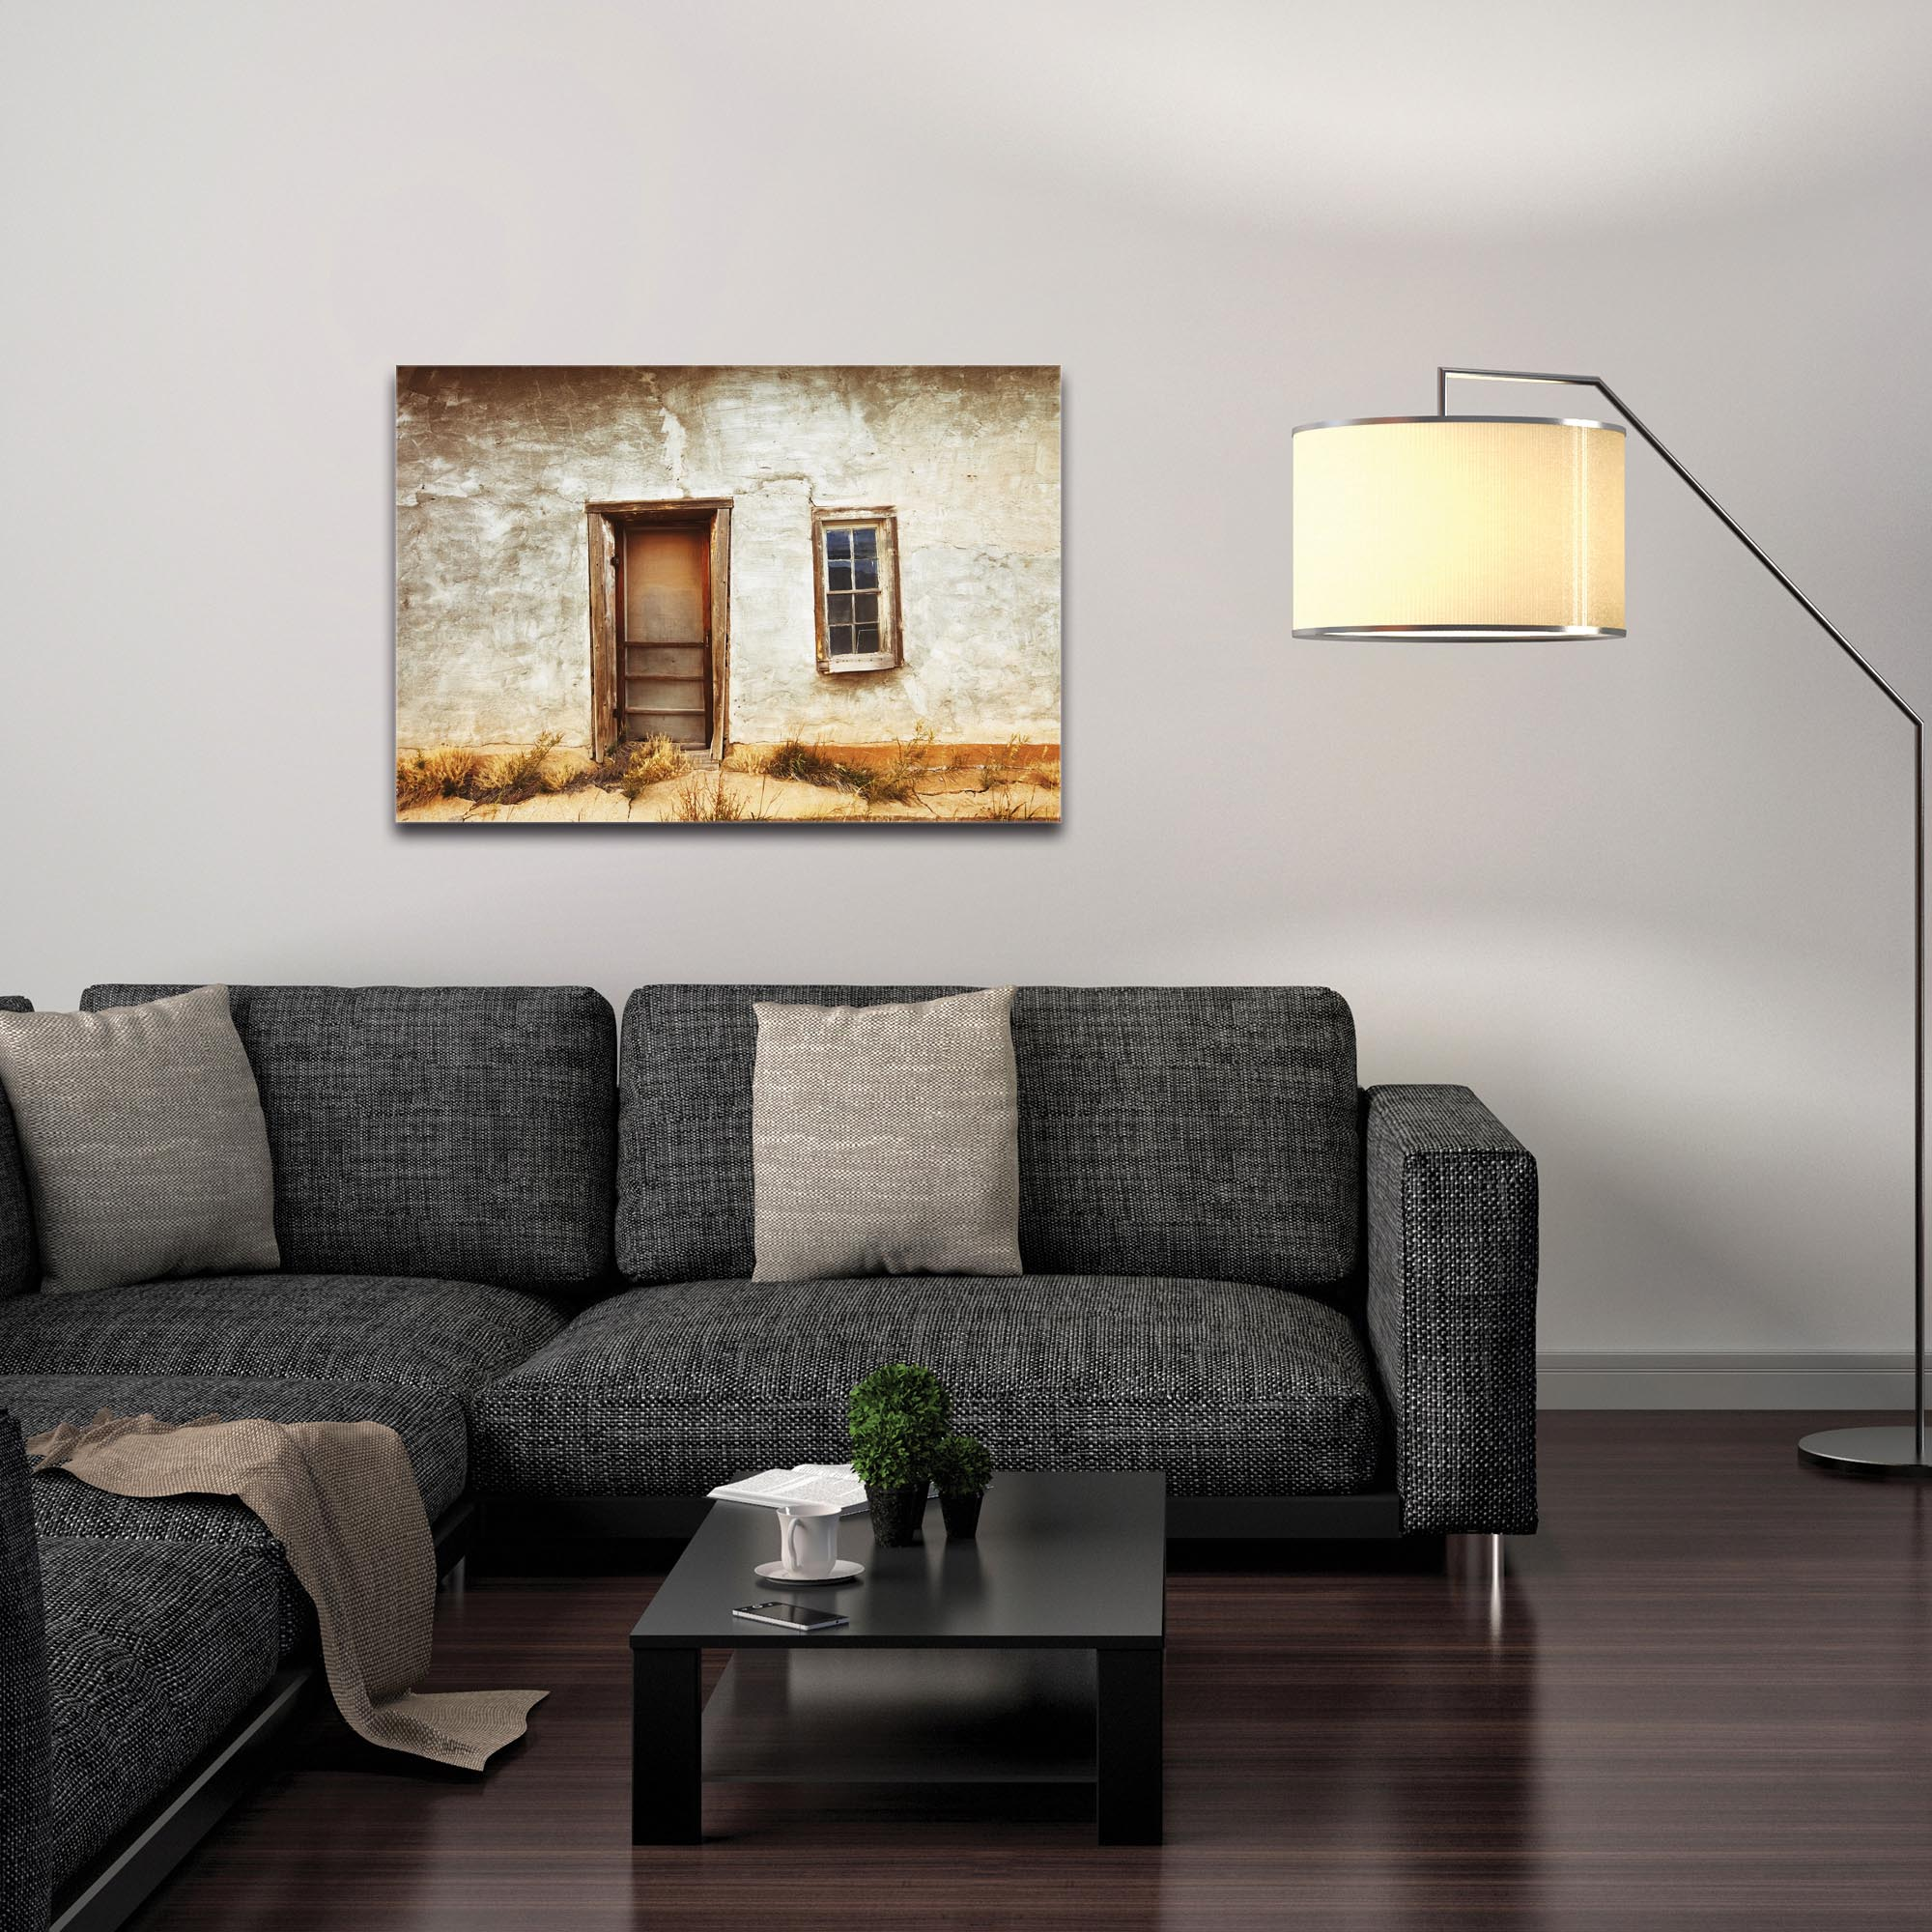 Eclectic Wall Art 'Southern Door' - Architecture Decor on Metal or Plexiglass - Image 3